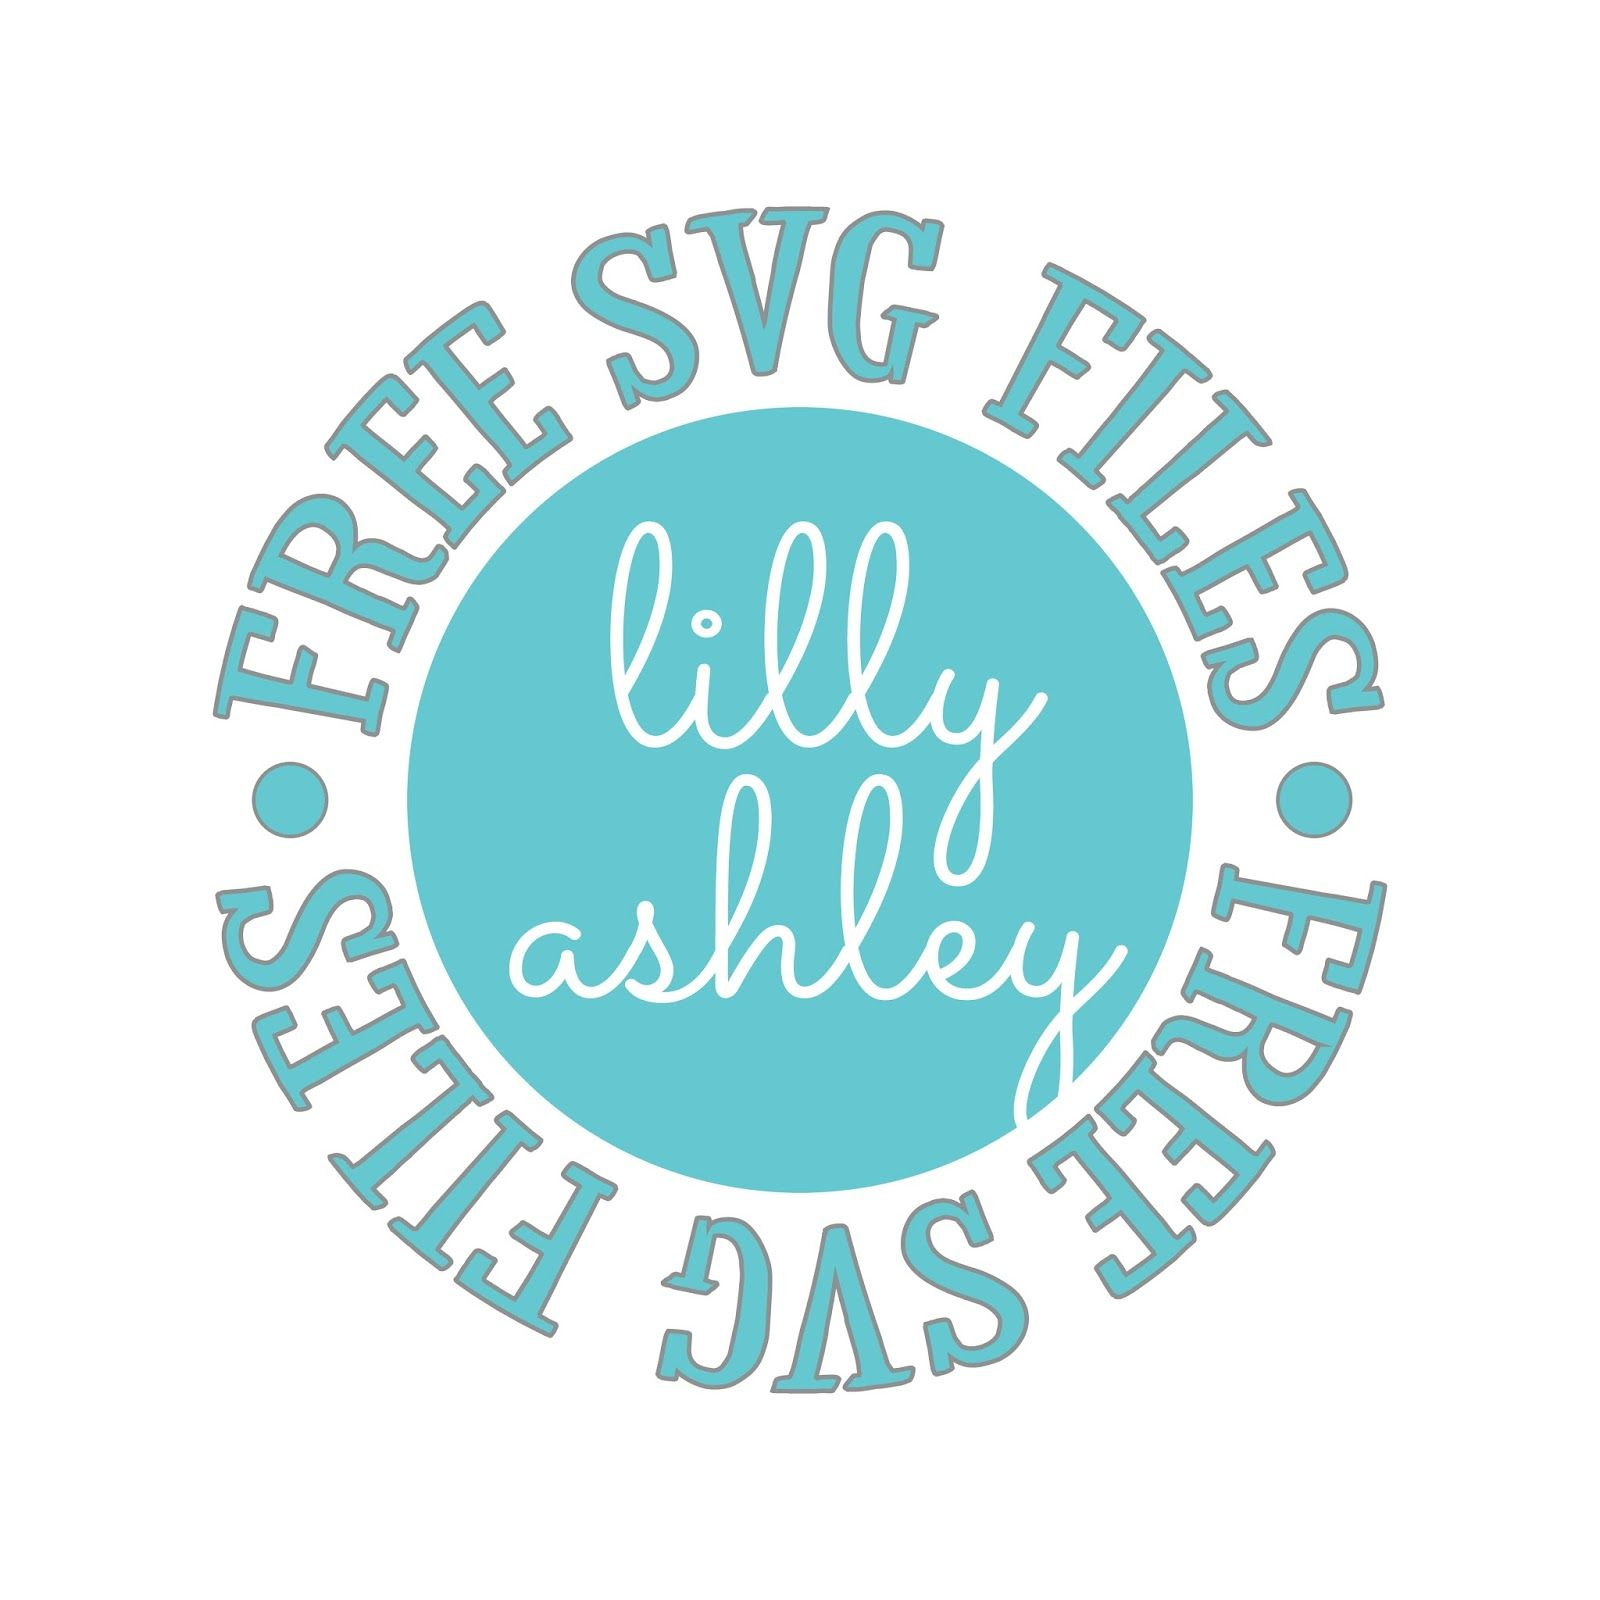 Free Binder Cover Sets Cricut, Svg files for cricut, Svg